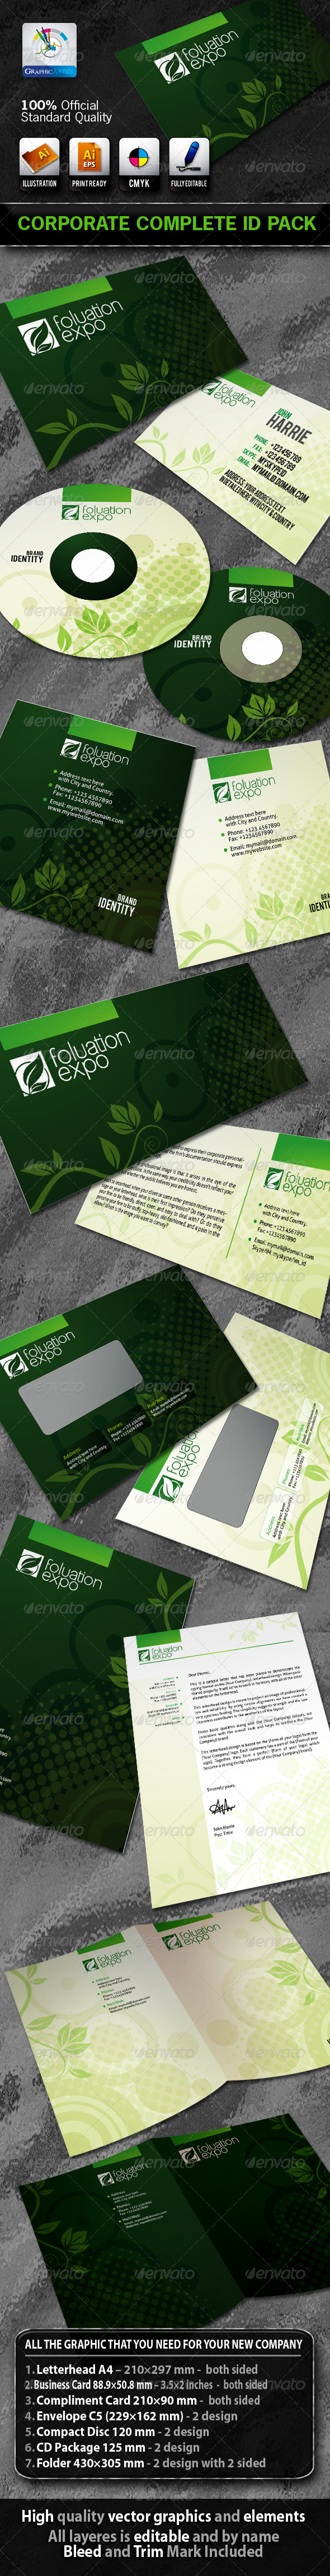 FoluationExpo Business Corporate ID Pack + Logo - Stationery Print Templates